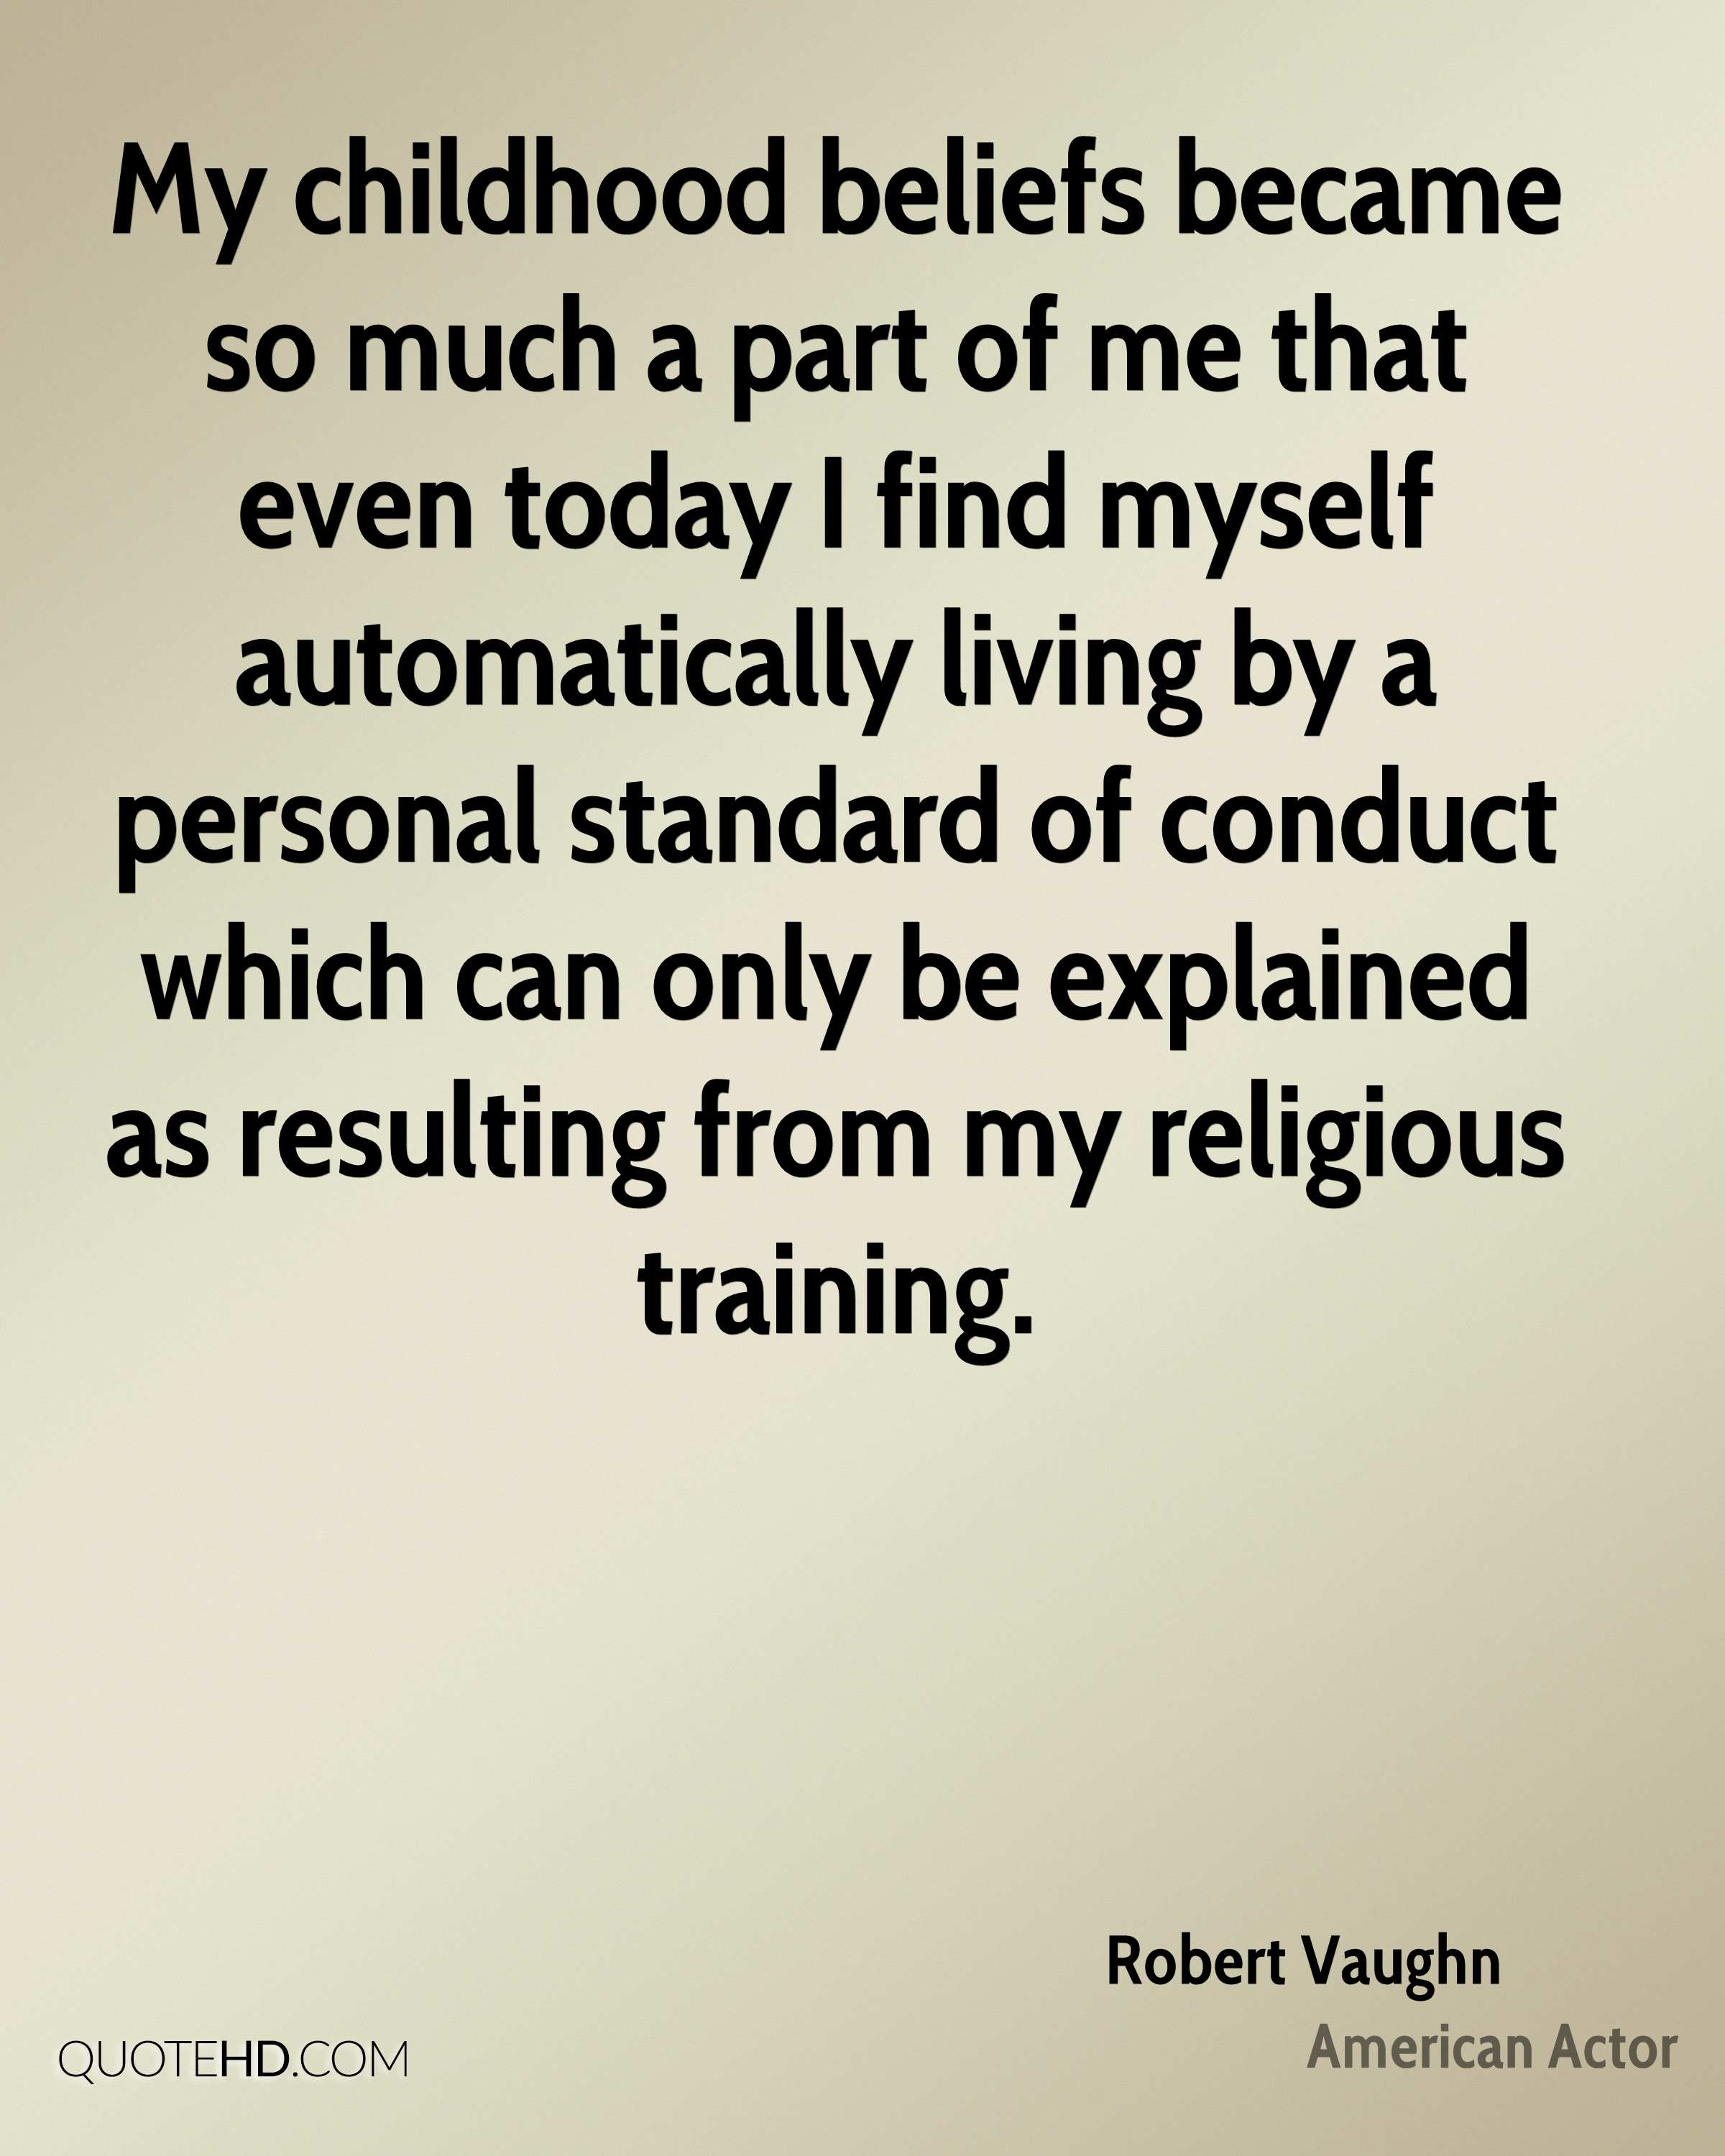 My childhood beliefs became so much a part of me that even today I find myself automatically living by a personal standard of conduct which can only be explained as resulting from my religious training.